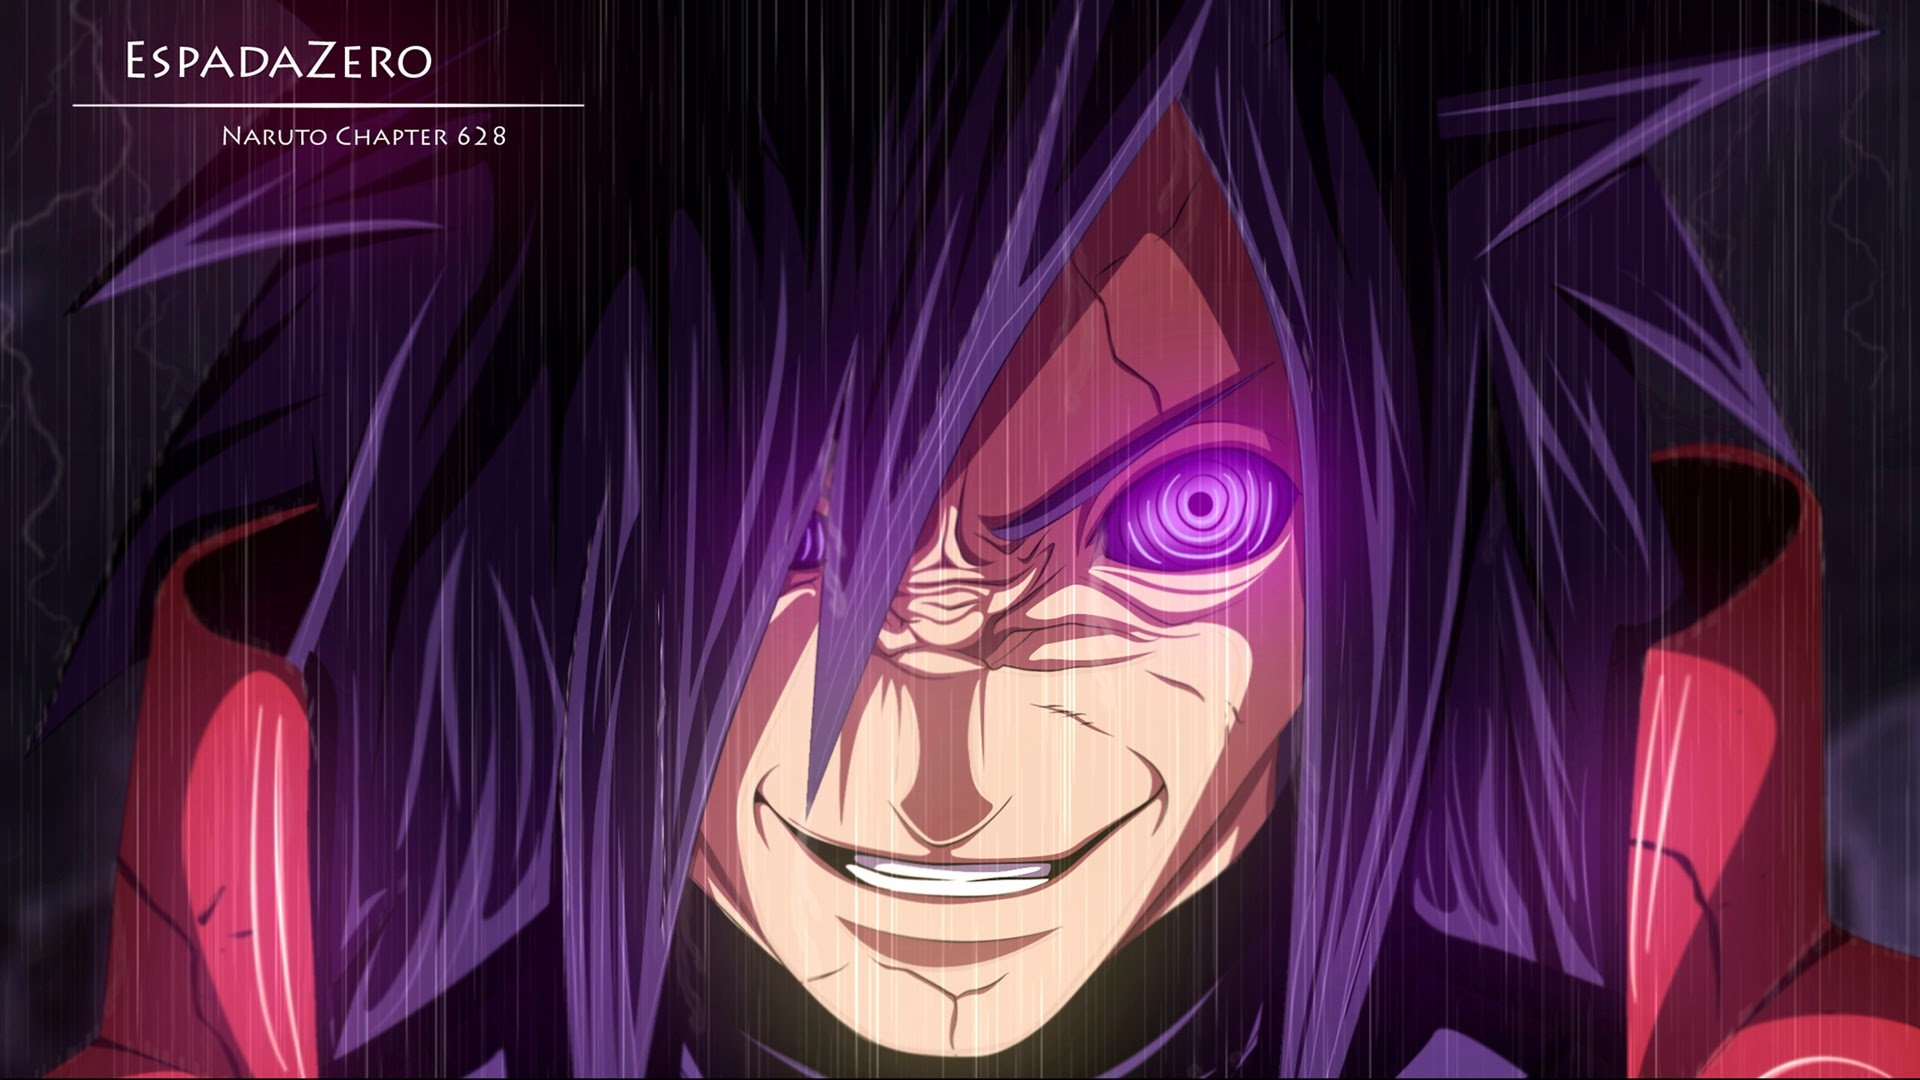 alex norie gasketch blog Madara Uchiha Wallpaper 1920x1080